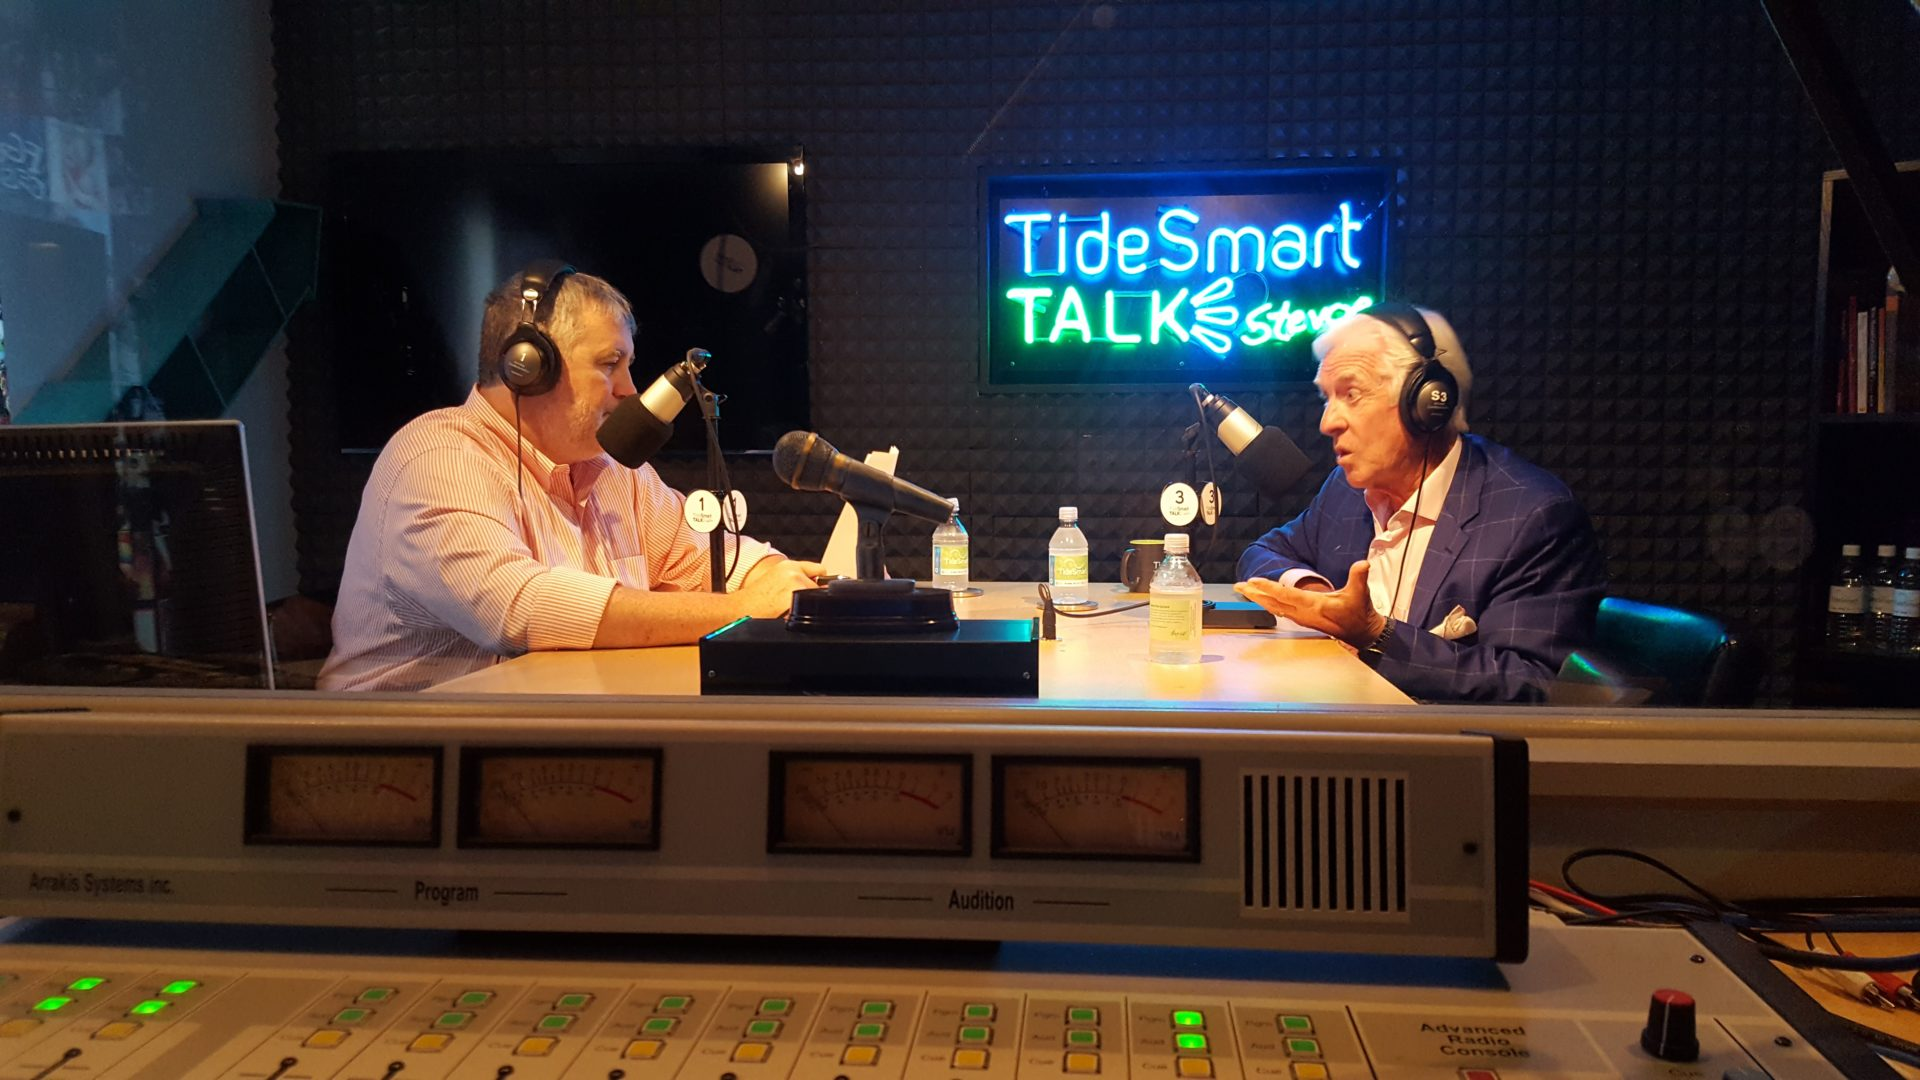 Host of TideSmart Talk with Stevoe, Steve Woods, welcomed the President of the Maine State Chamber of Commerce, Dana Connors (at right).